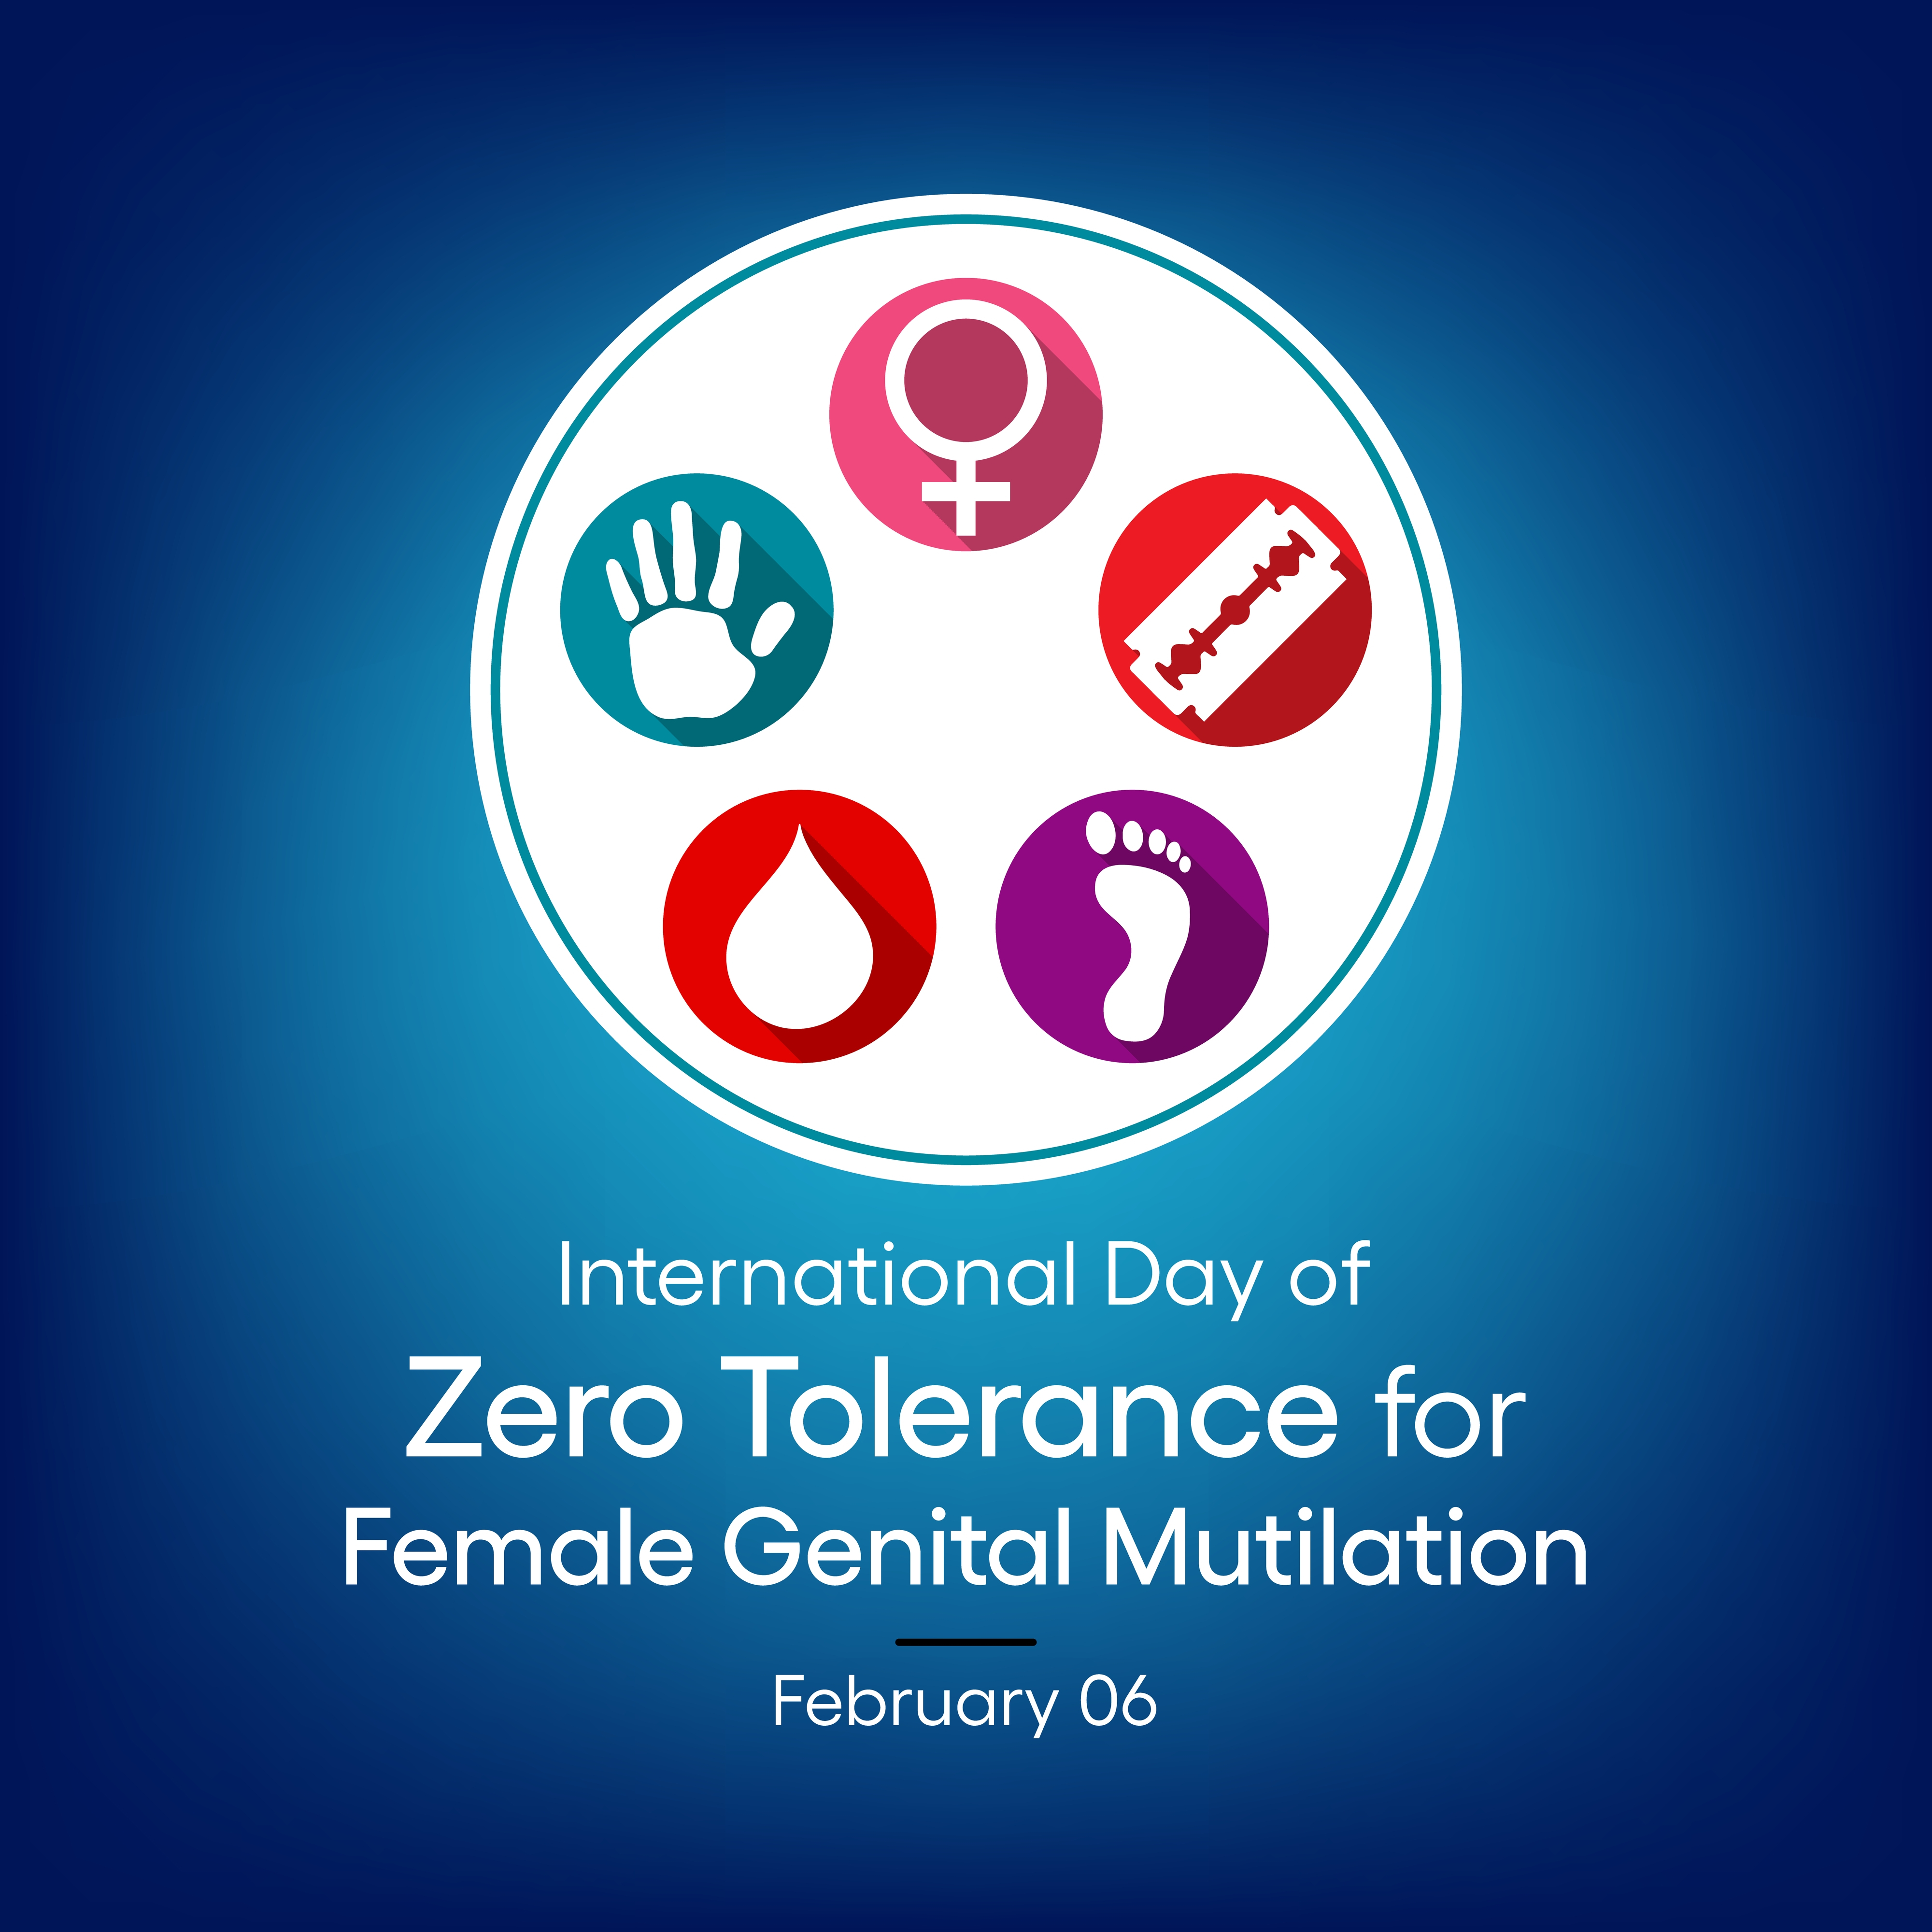 FGM Zero Tolerance Day